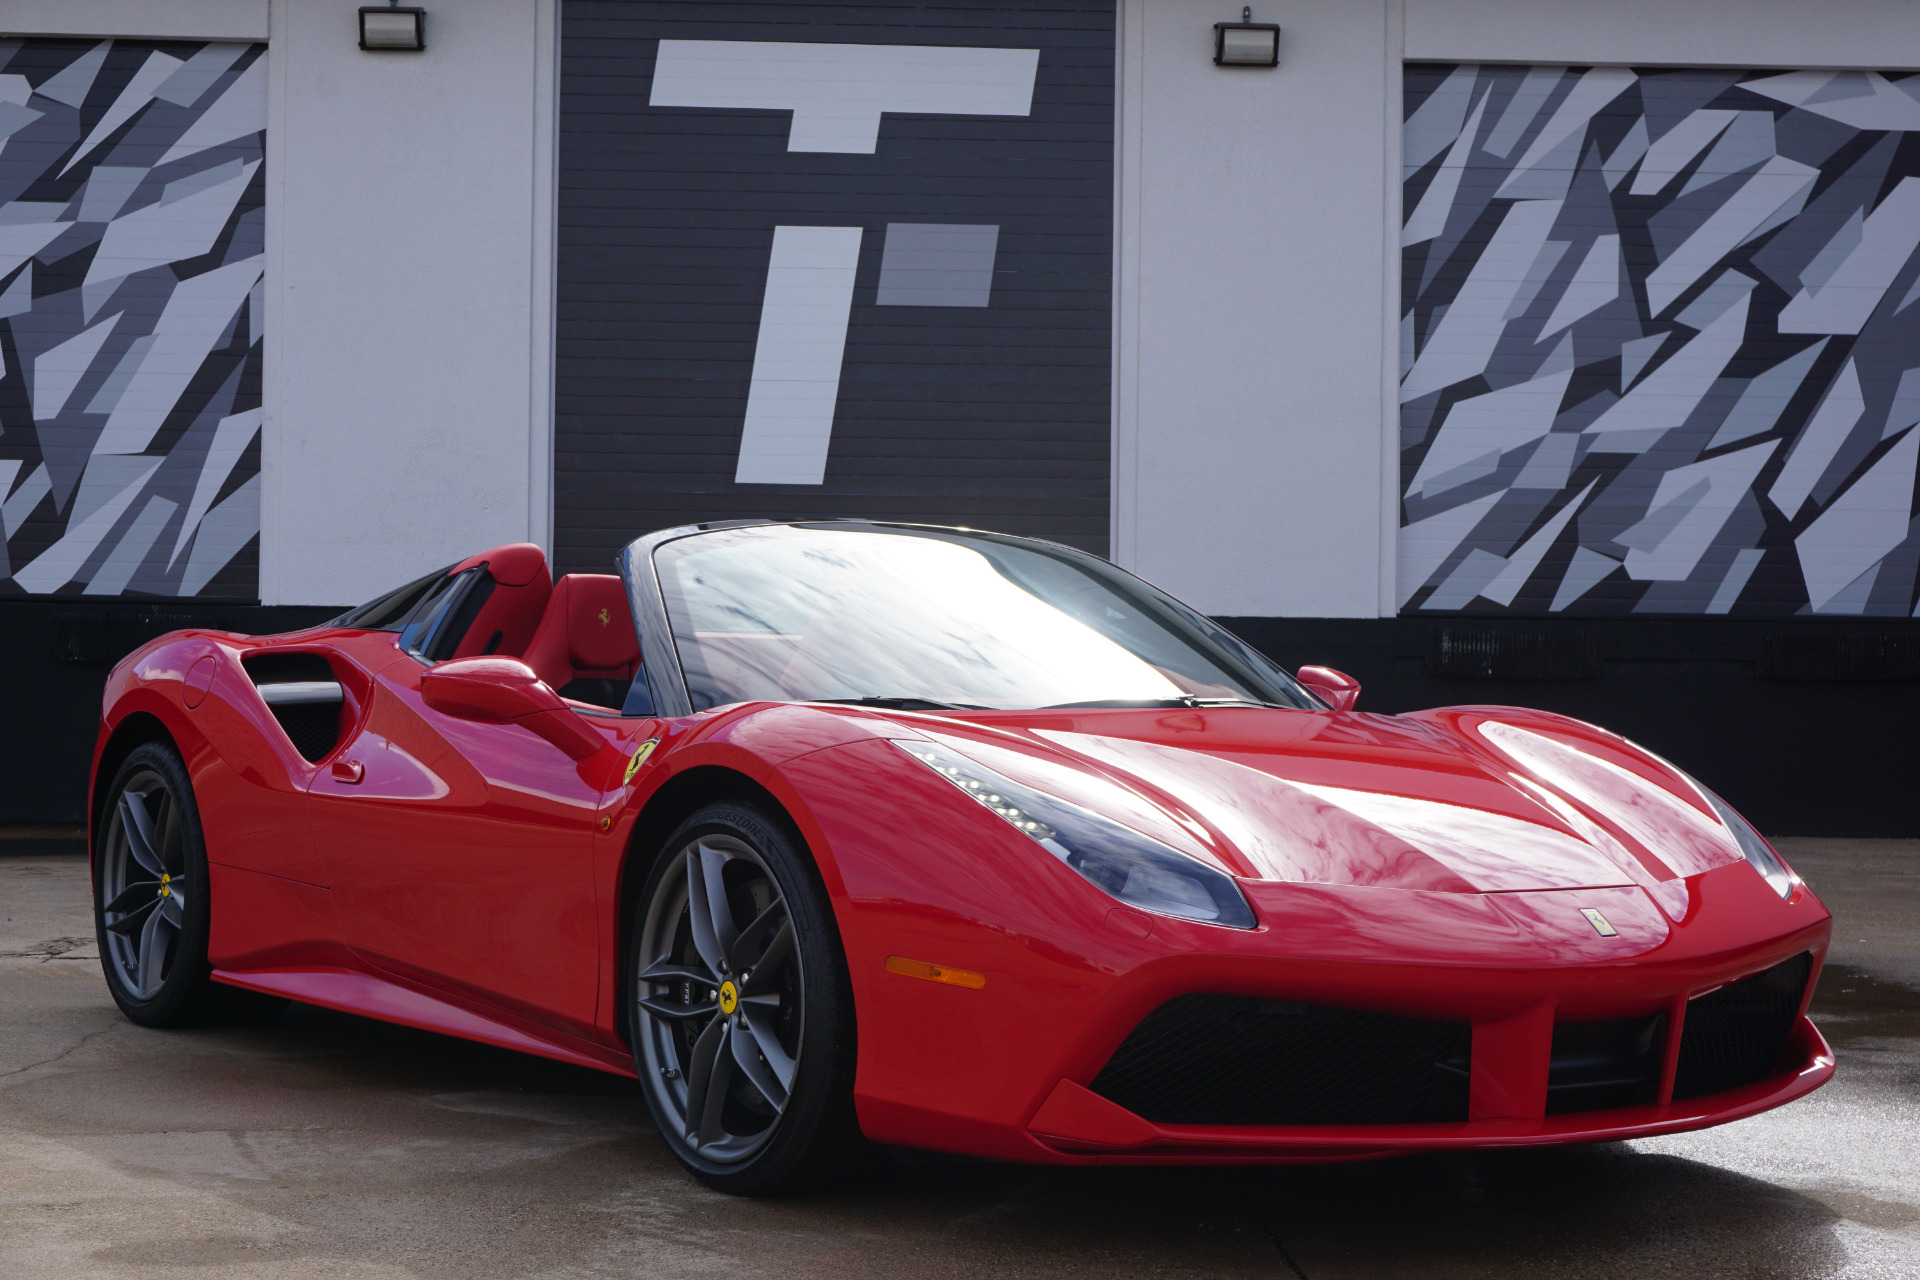 Used 2019 Ferrari 488 Spider For Sale 289 900 Tactical Fleet Stock Tf1491